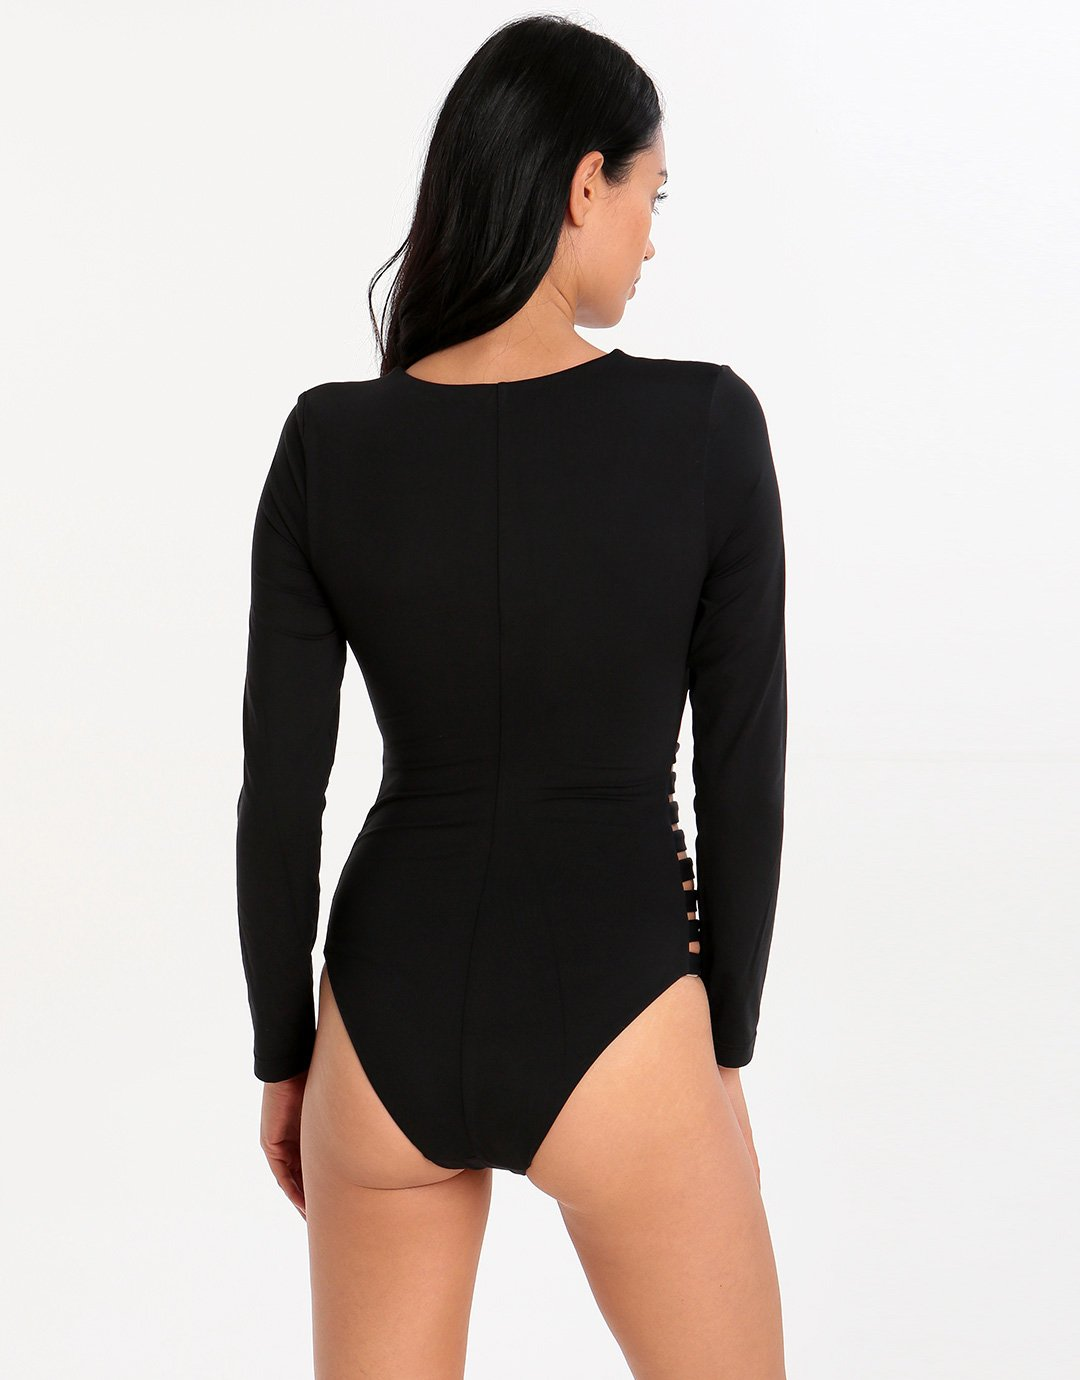 Seafolly Active Multi Strap Surfsuit - Black